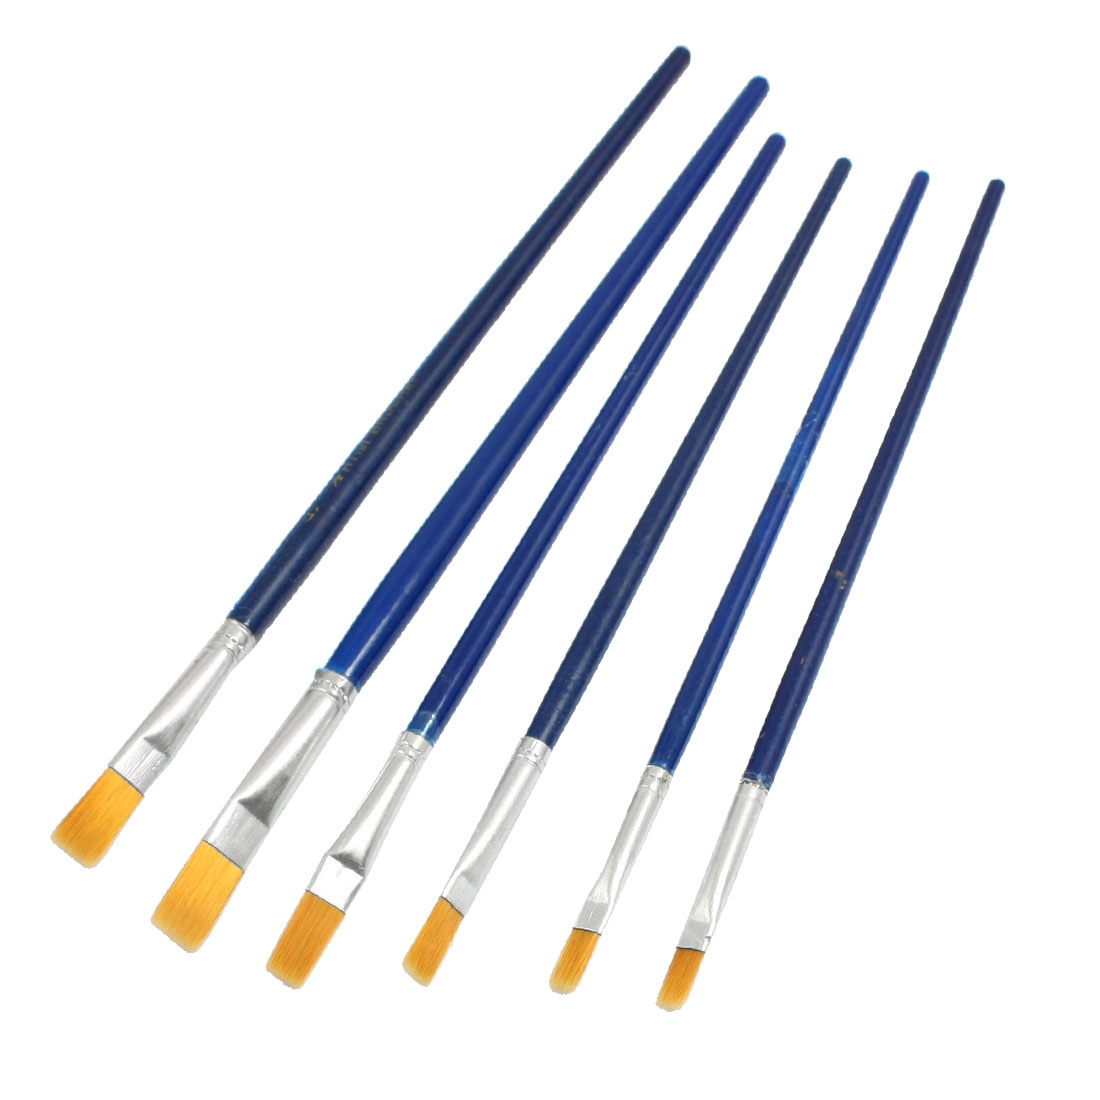 6 in 1 Blue Plastic Handle Oil Watercolor Art Drawing Painting Brushes